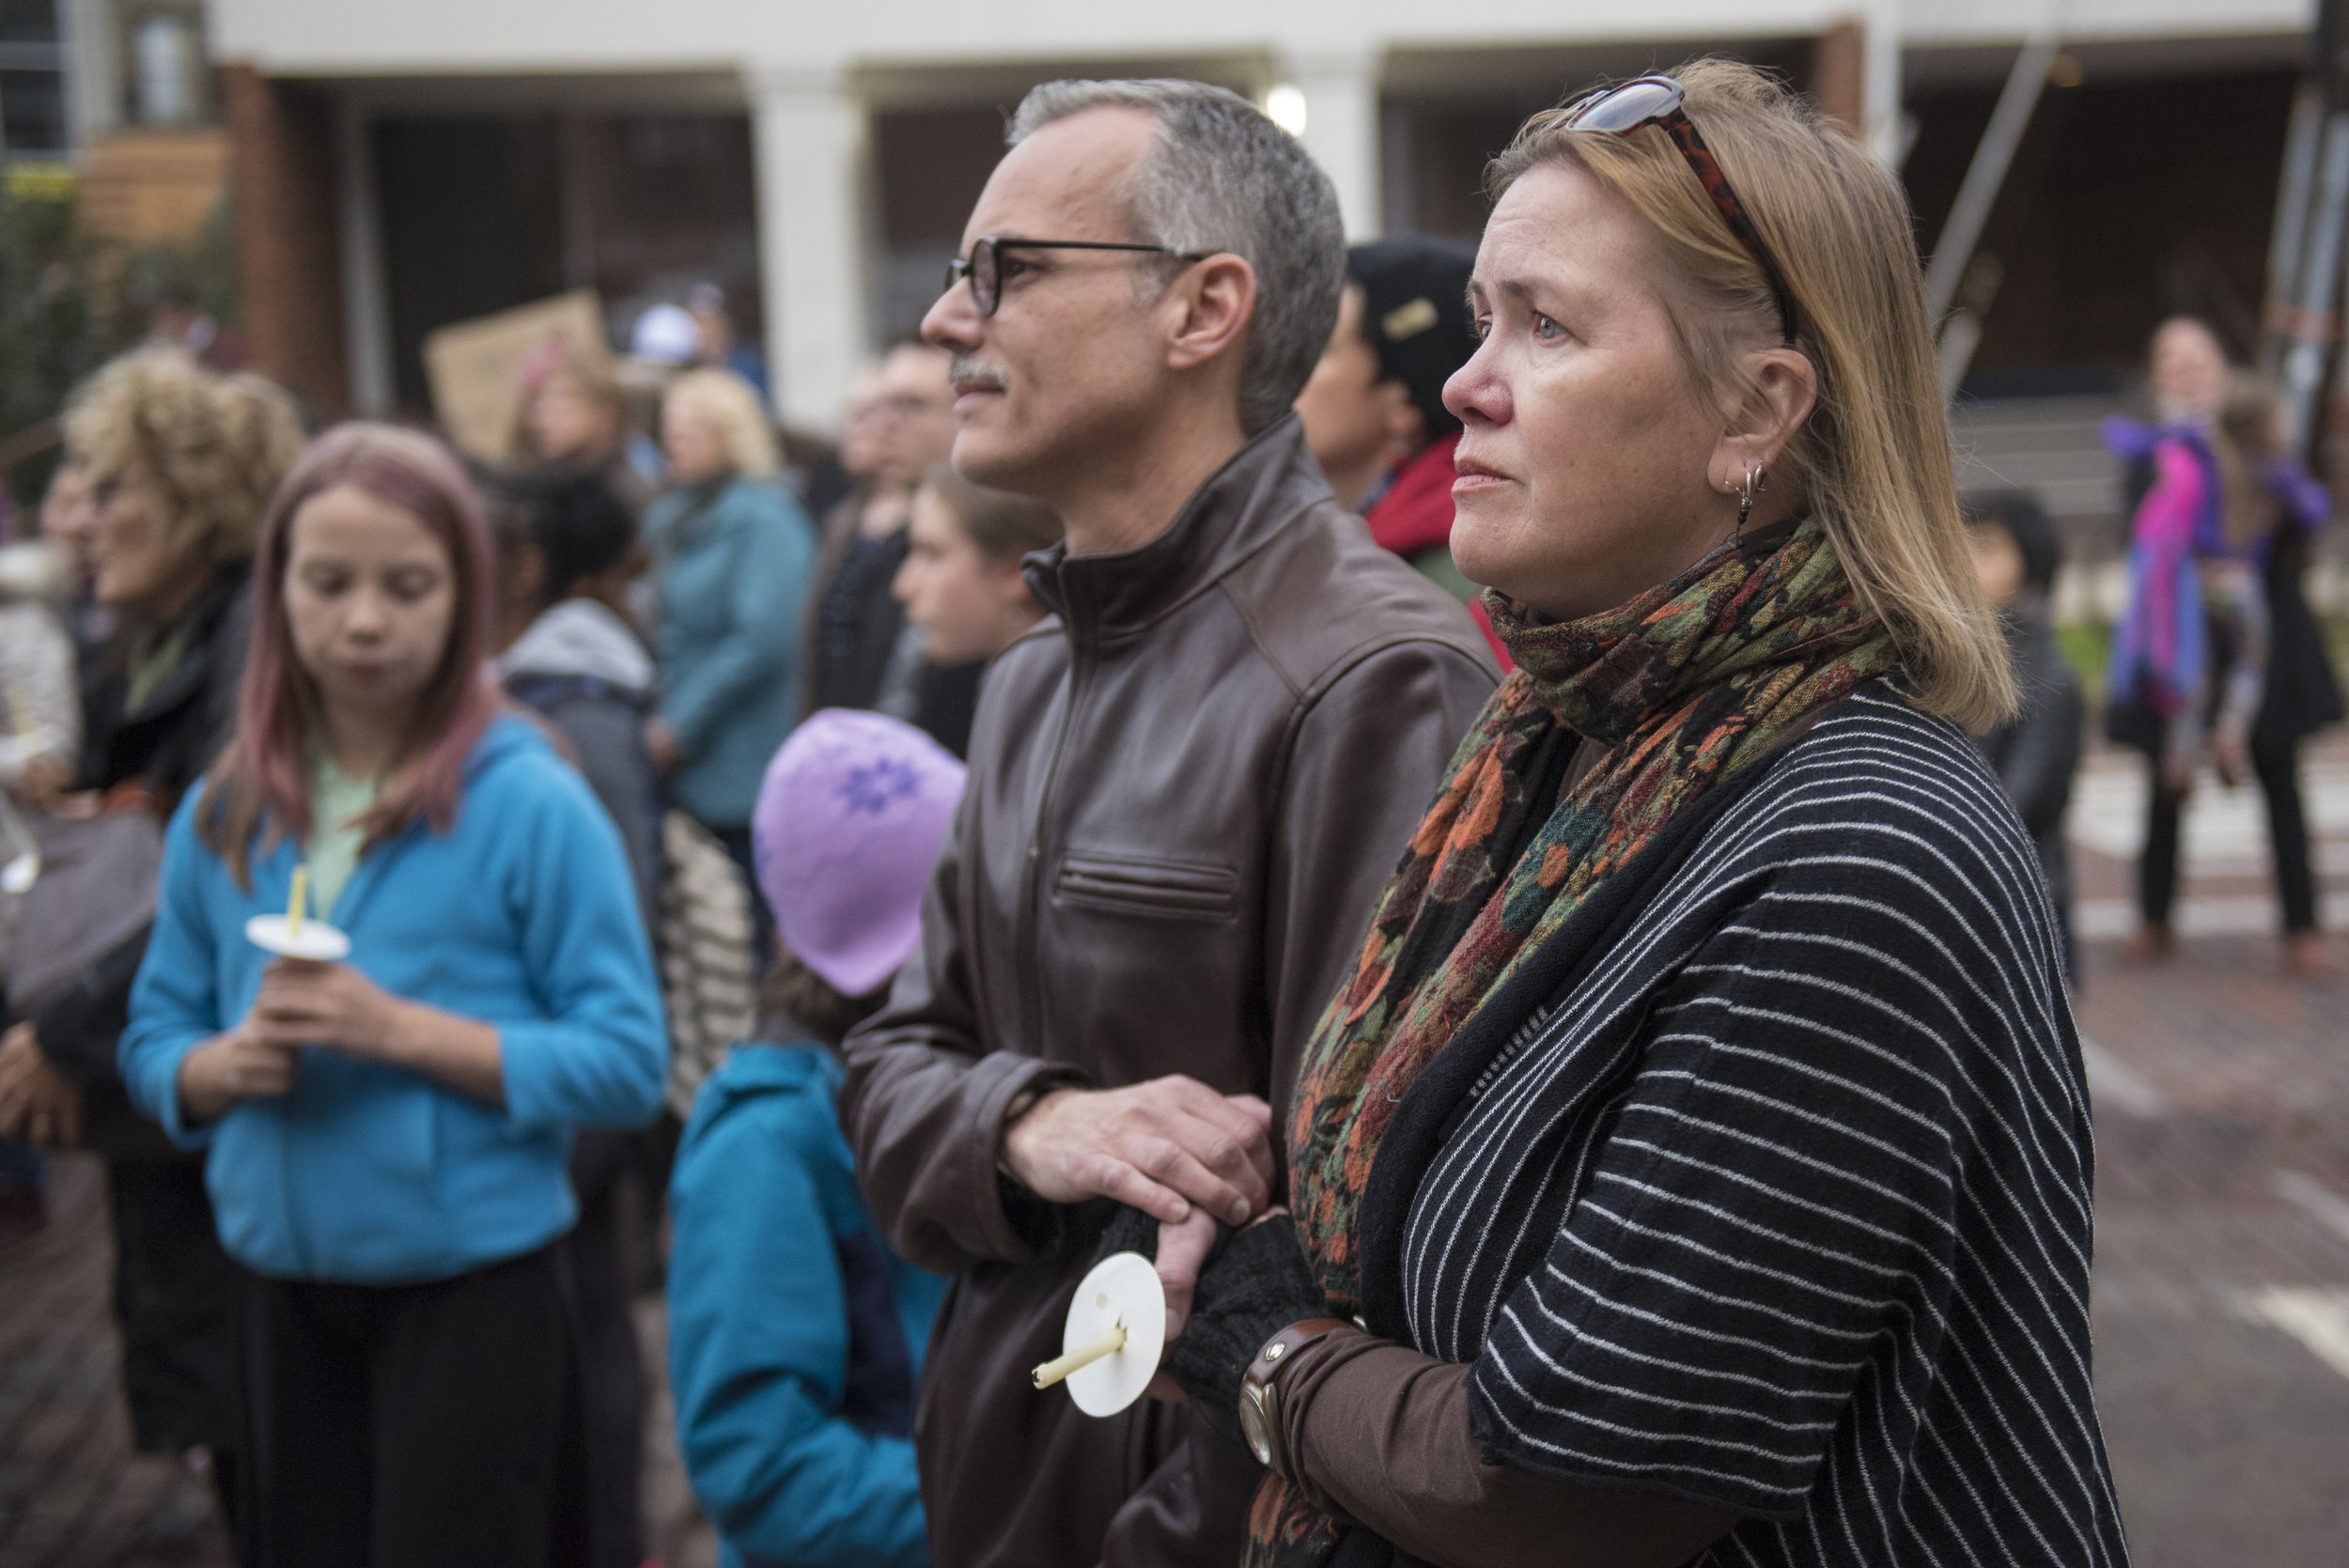 Stephen Dierna and Melissa Wales listen to speakers during a candlelight vigil held by Hillel on Oct. 29, 2018 for the victims of a mass shooting at a synagogue in Pittsburgh.